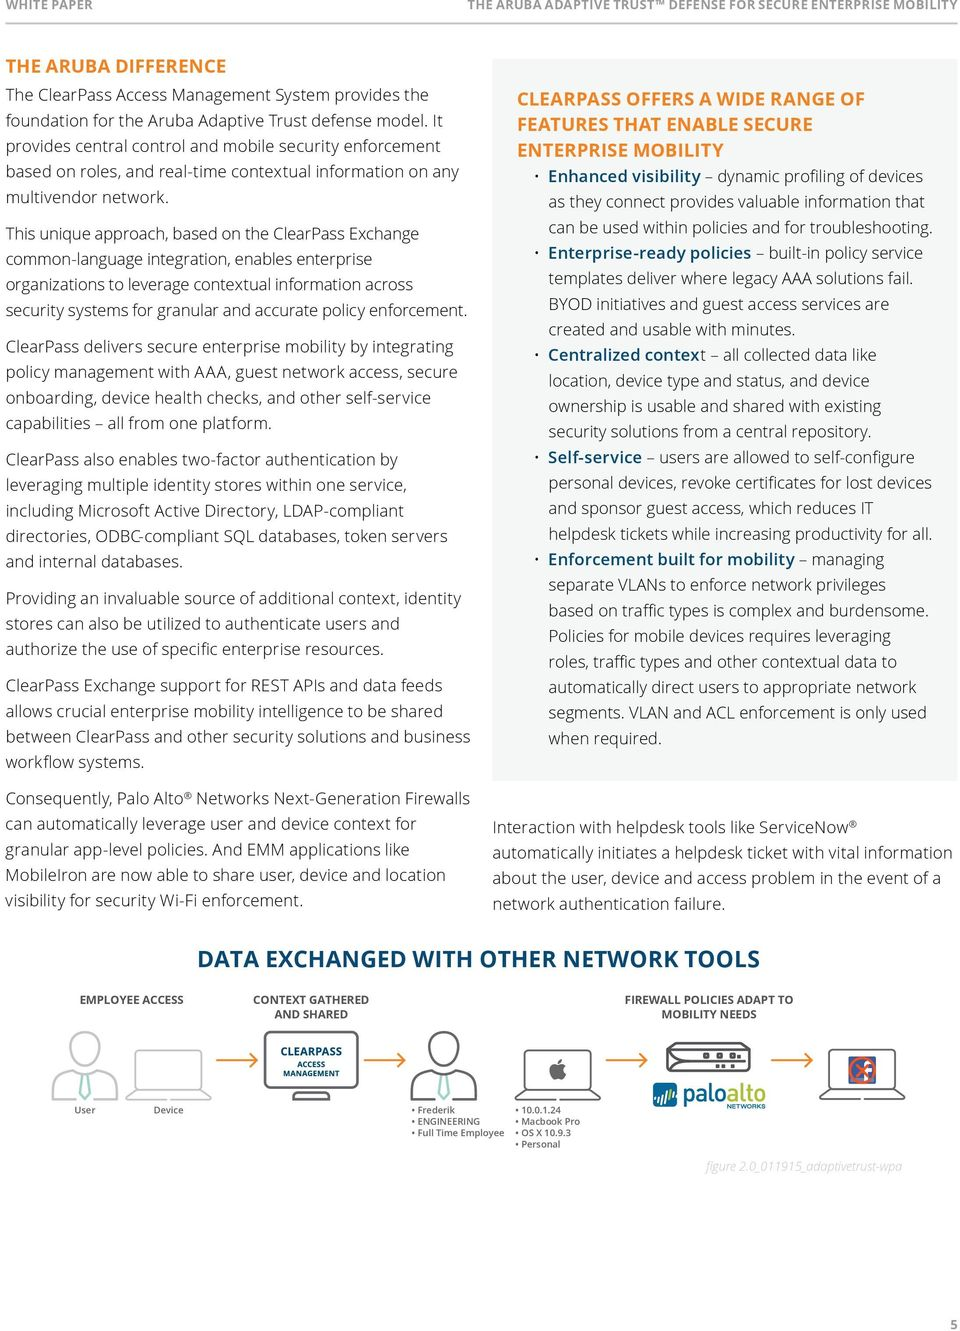 This unique approach, based on the ClearPass Exchange common-language integration, enables enterprise organizations to leverage contextual information across security systems for granular and